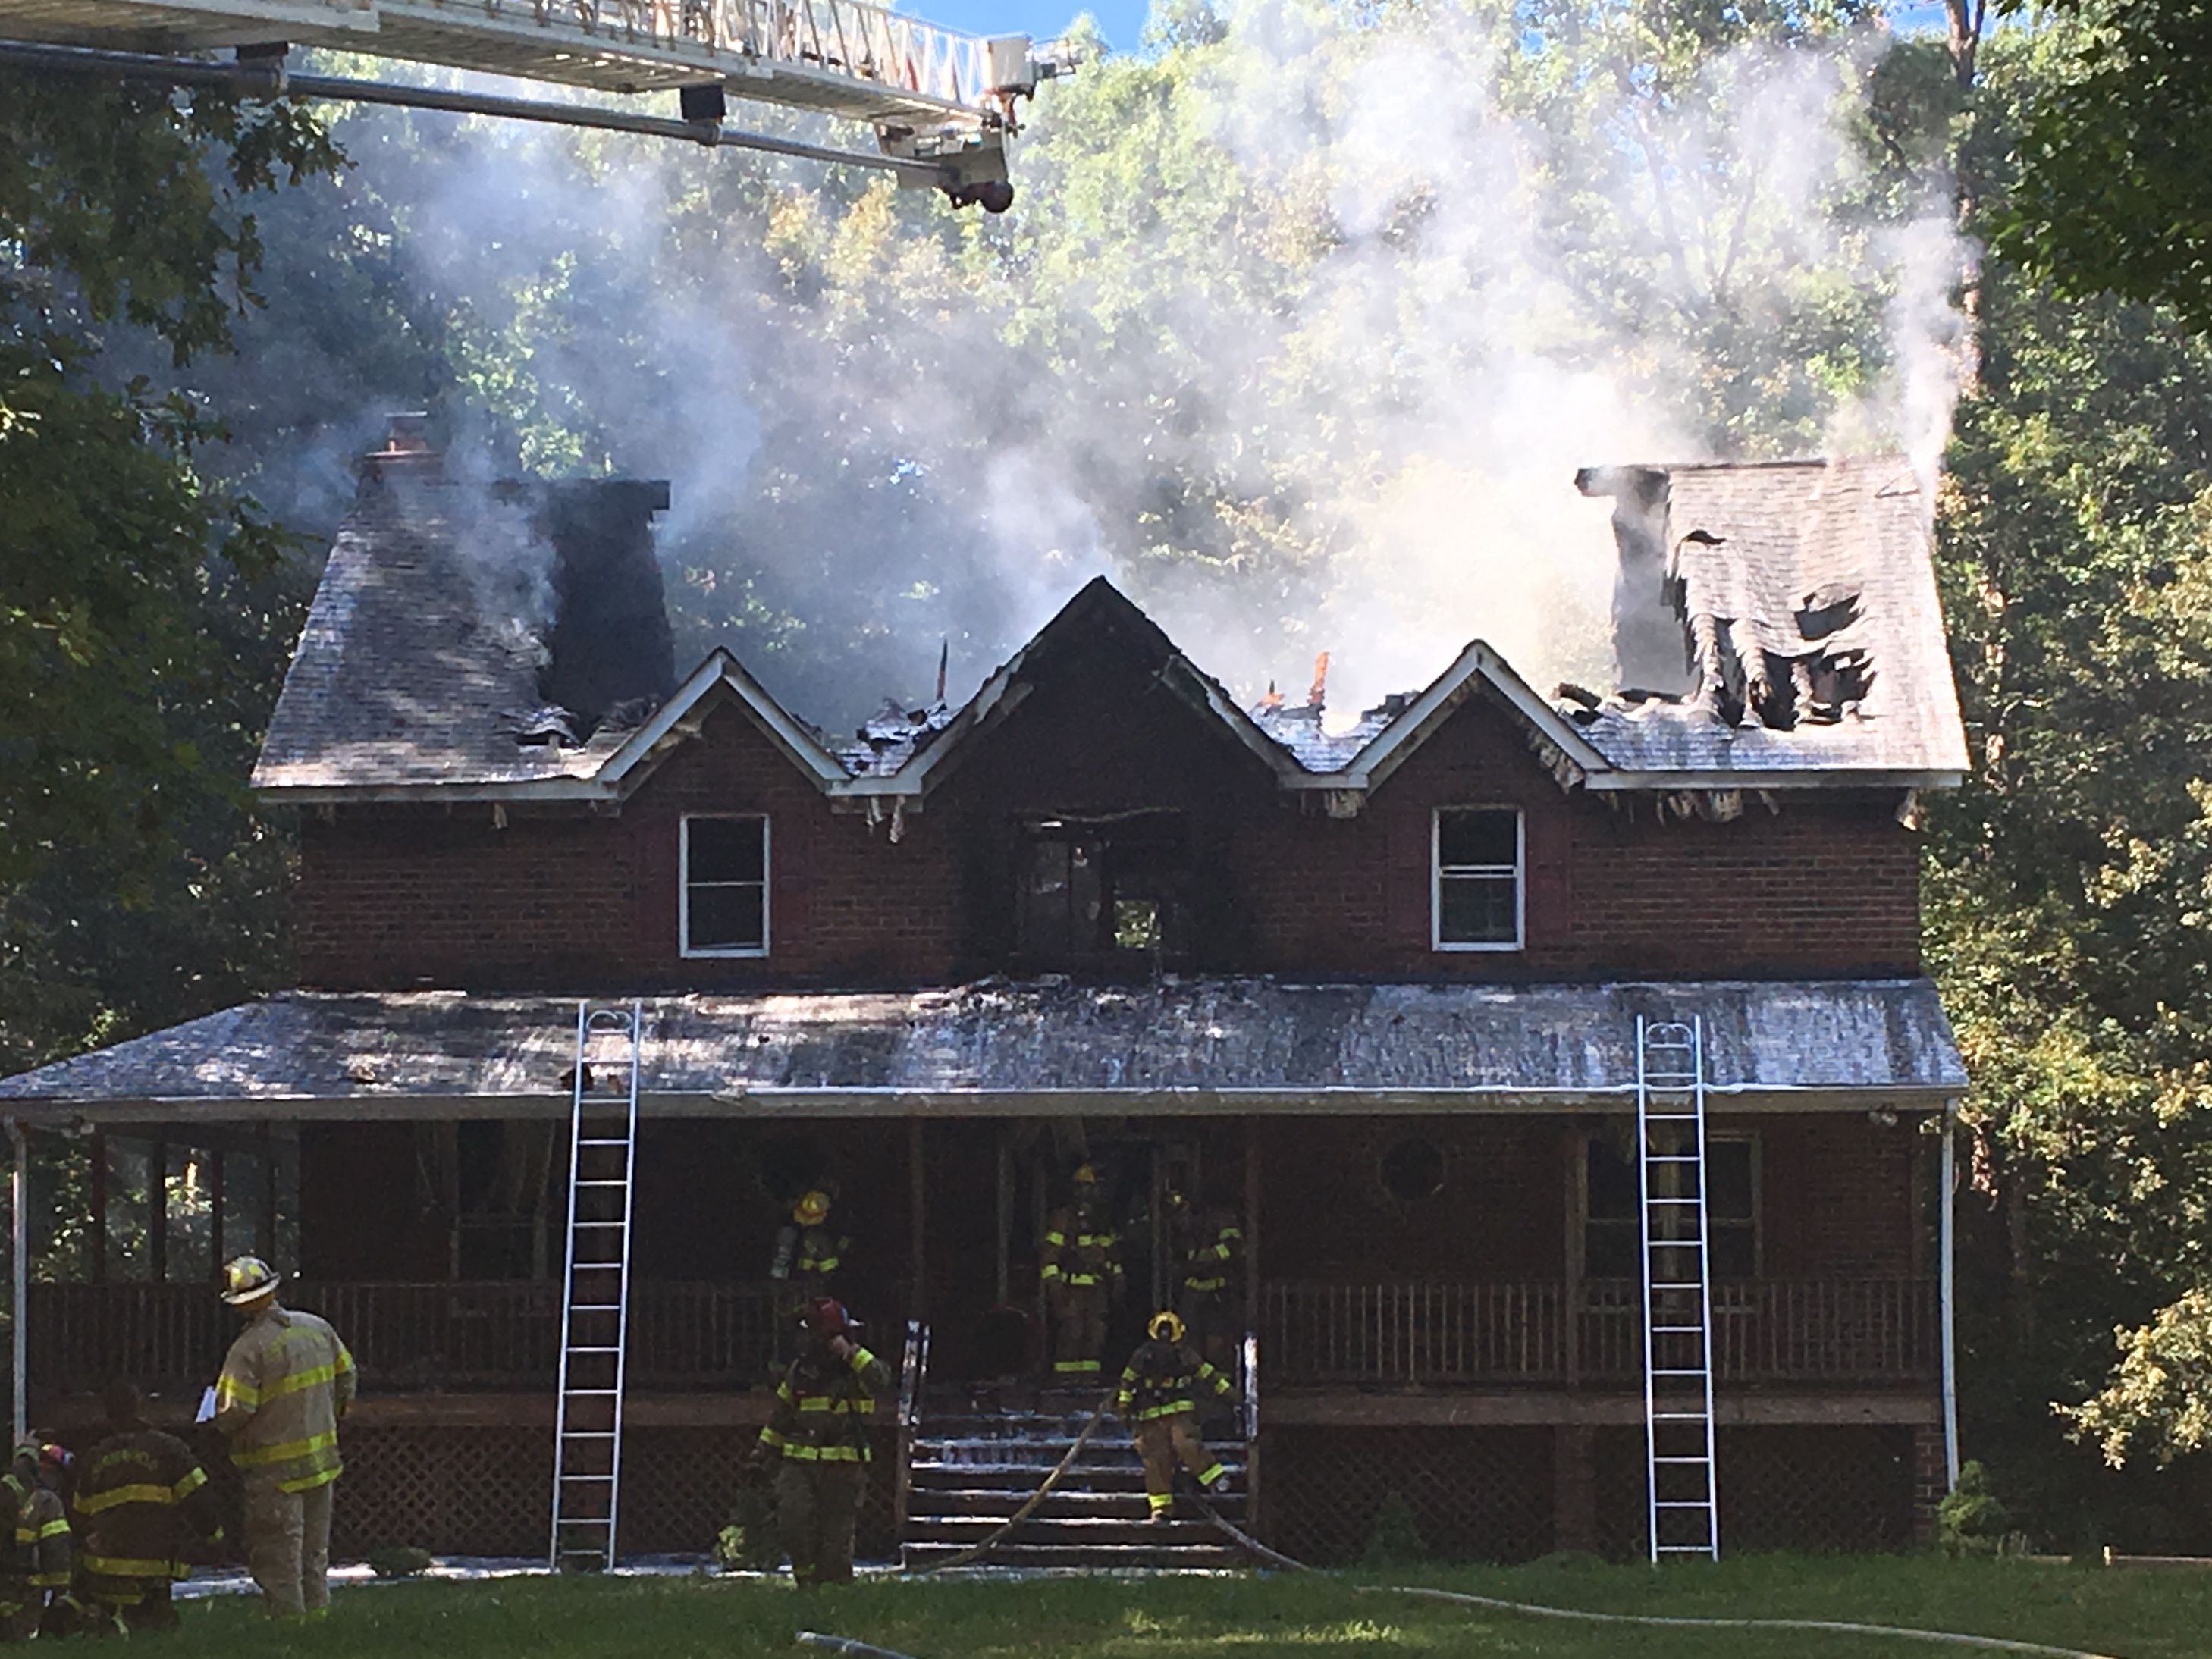 Fire destroys Chesterfield home; no injuries reported